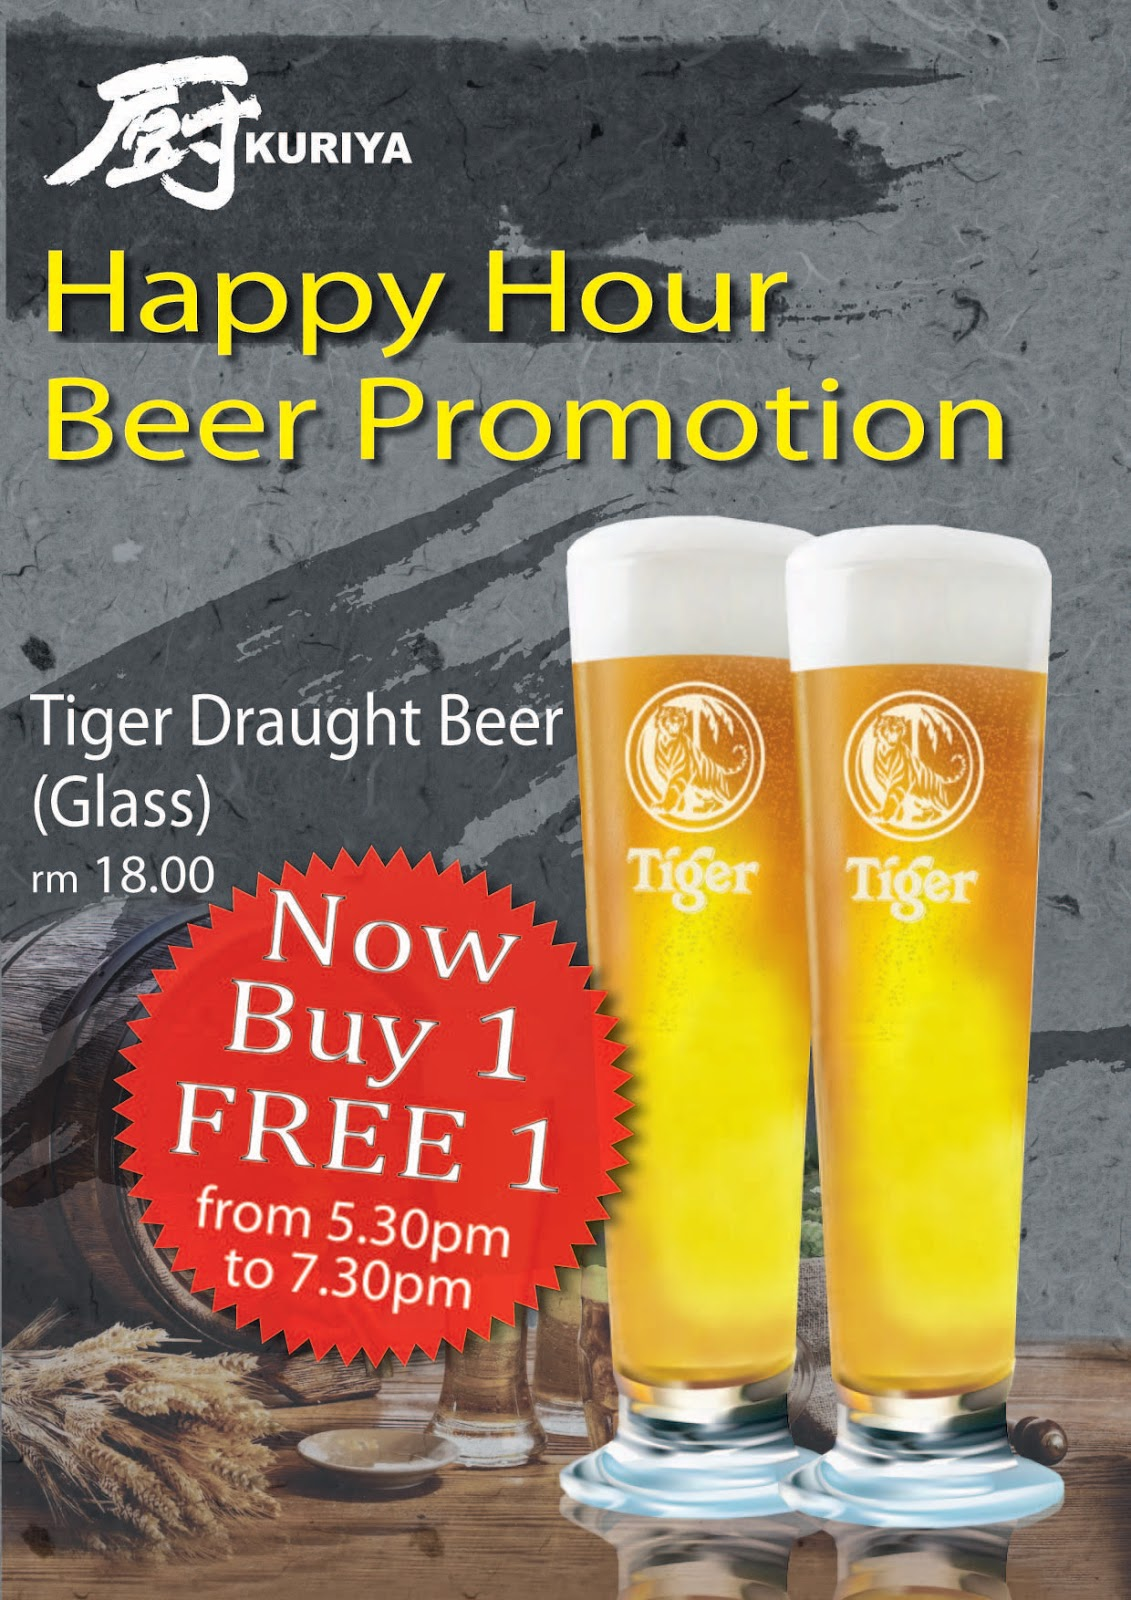 Kuriya Happy Hour Beer Promotion Malaysian Foodie